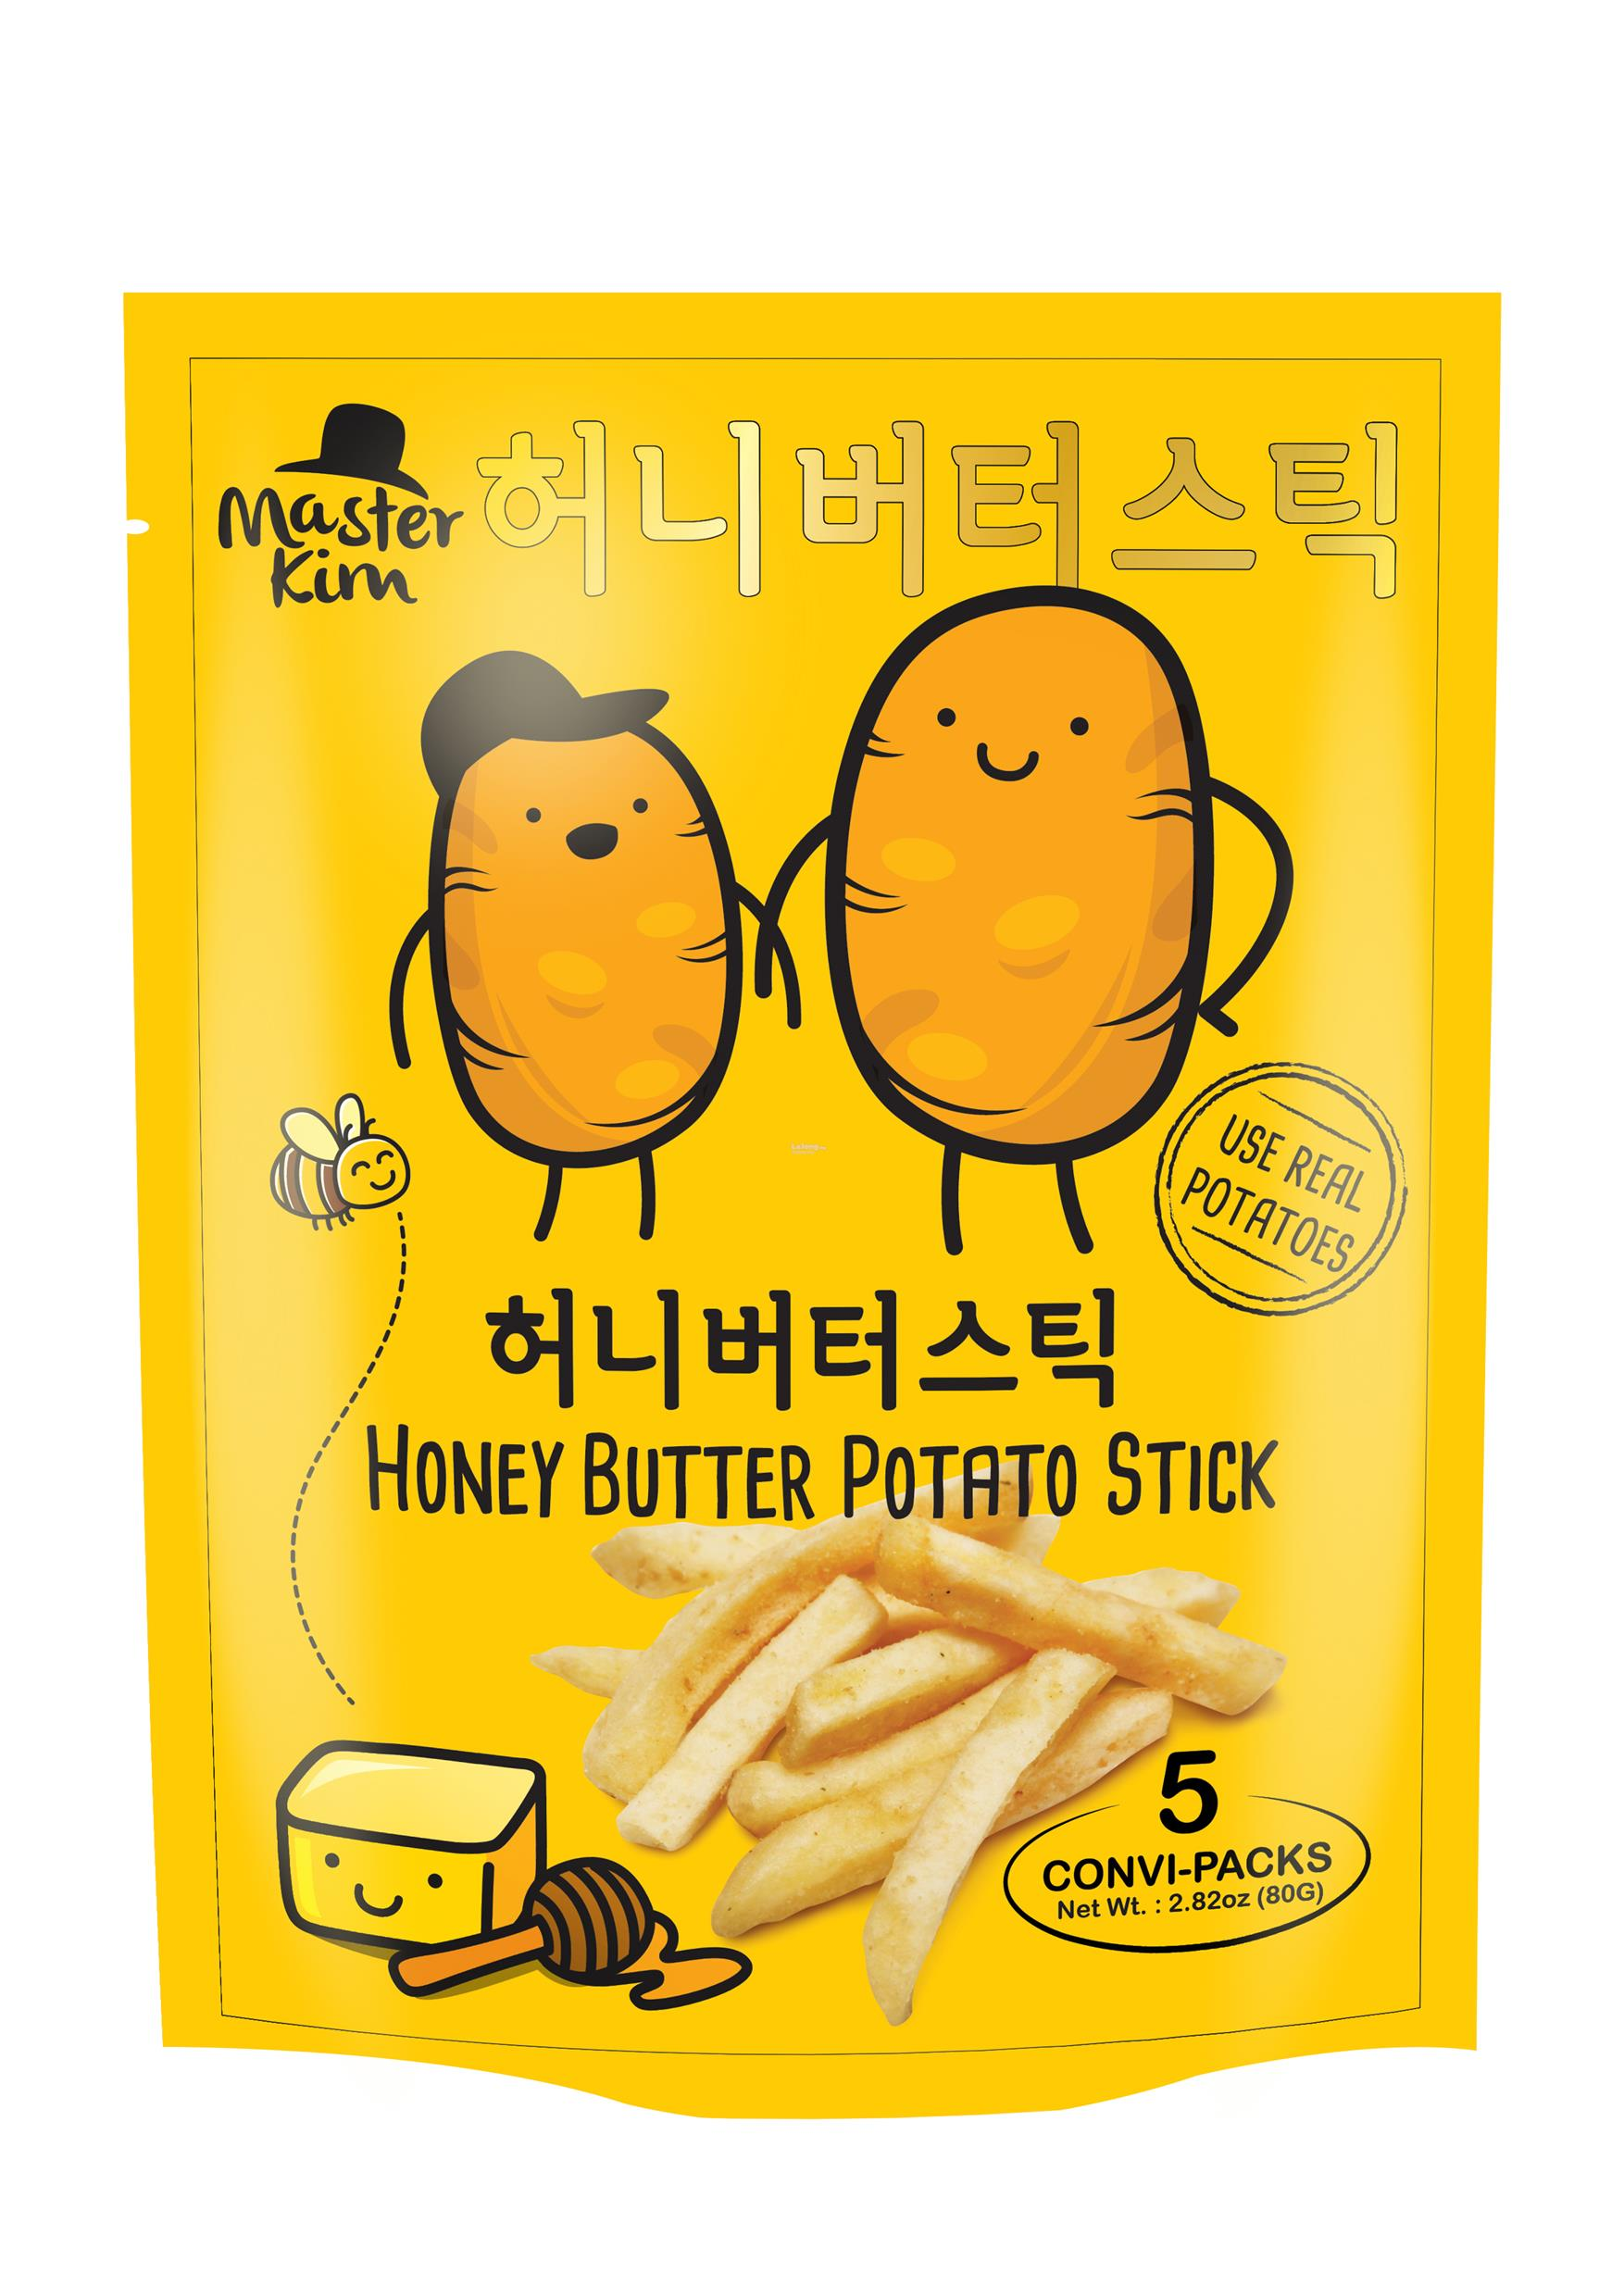 MASTER KIM HONEY BUTTER POTATO STICKS -16g x 5sachets